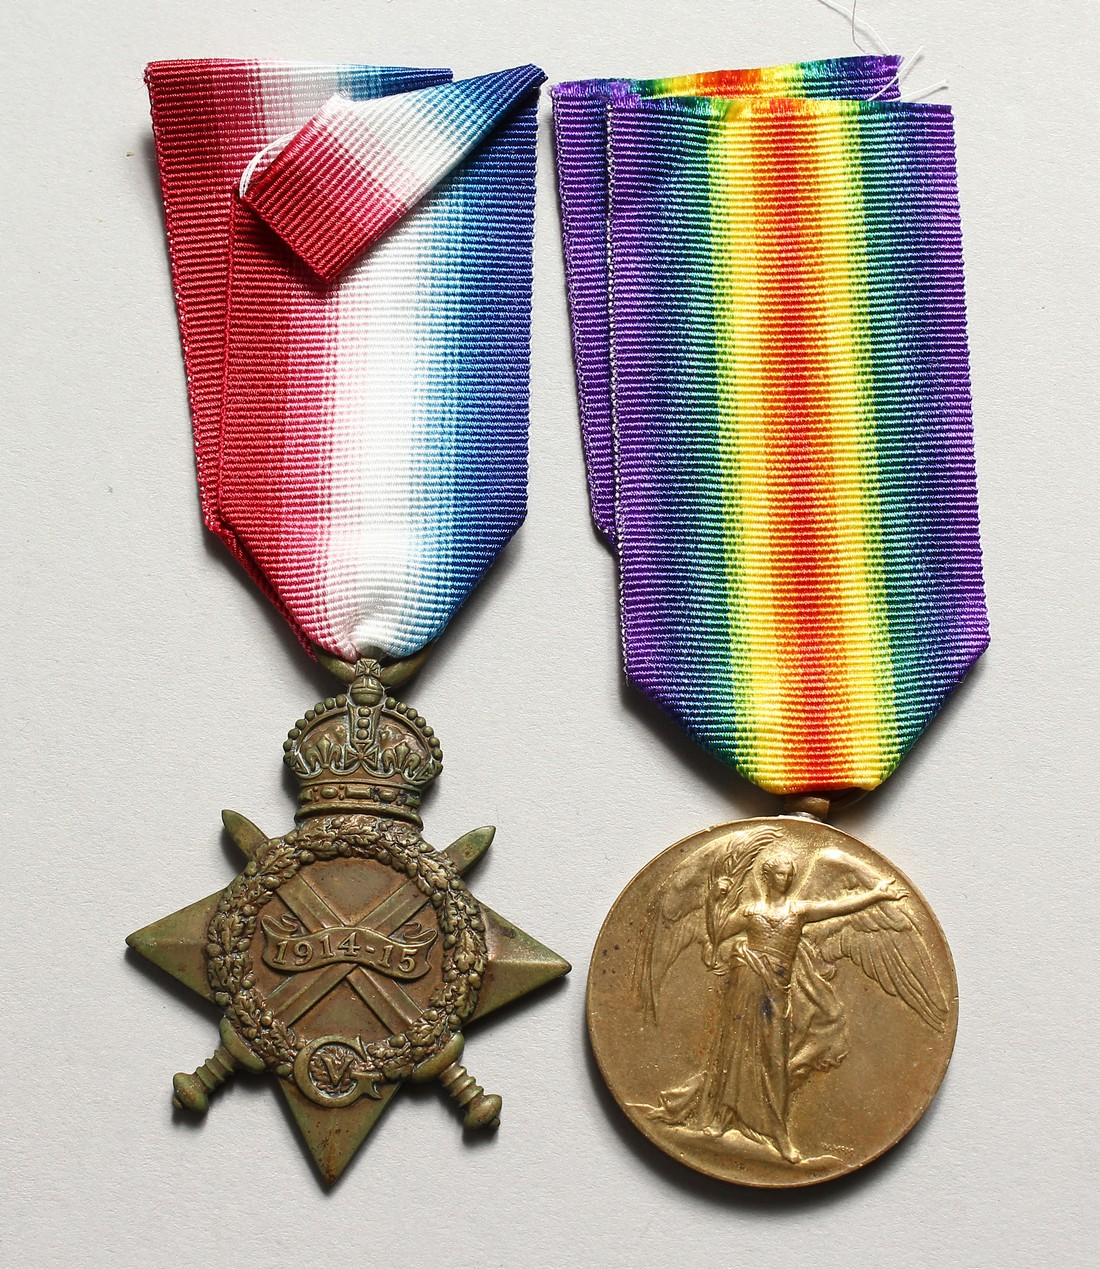 THE MEDALS OF ERNEST SELLINGS, 19 LONDON REG. 3454 610808.